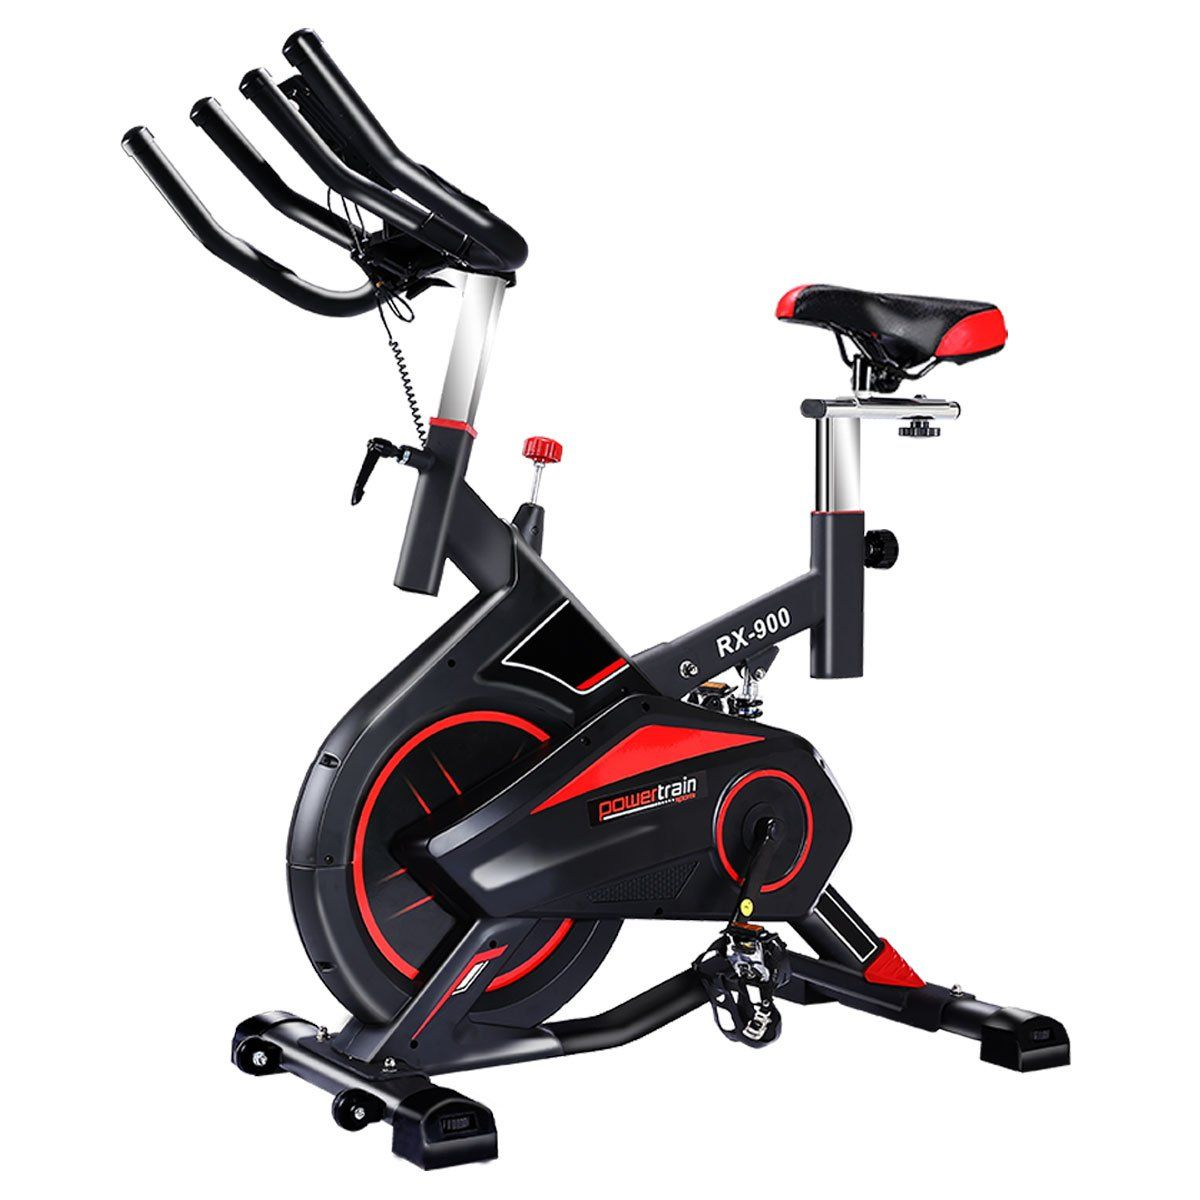 Powertrain Rx 900 Exercise Spin Bike Cardio Cycle Red With Images Spin Bike Workouts Bike Spin Bikes